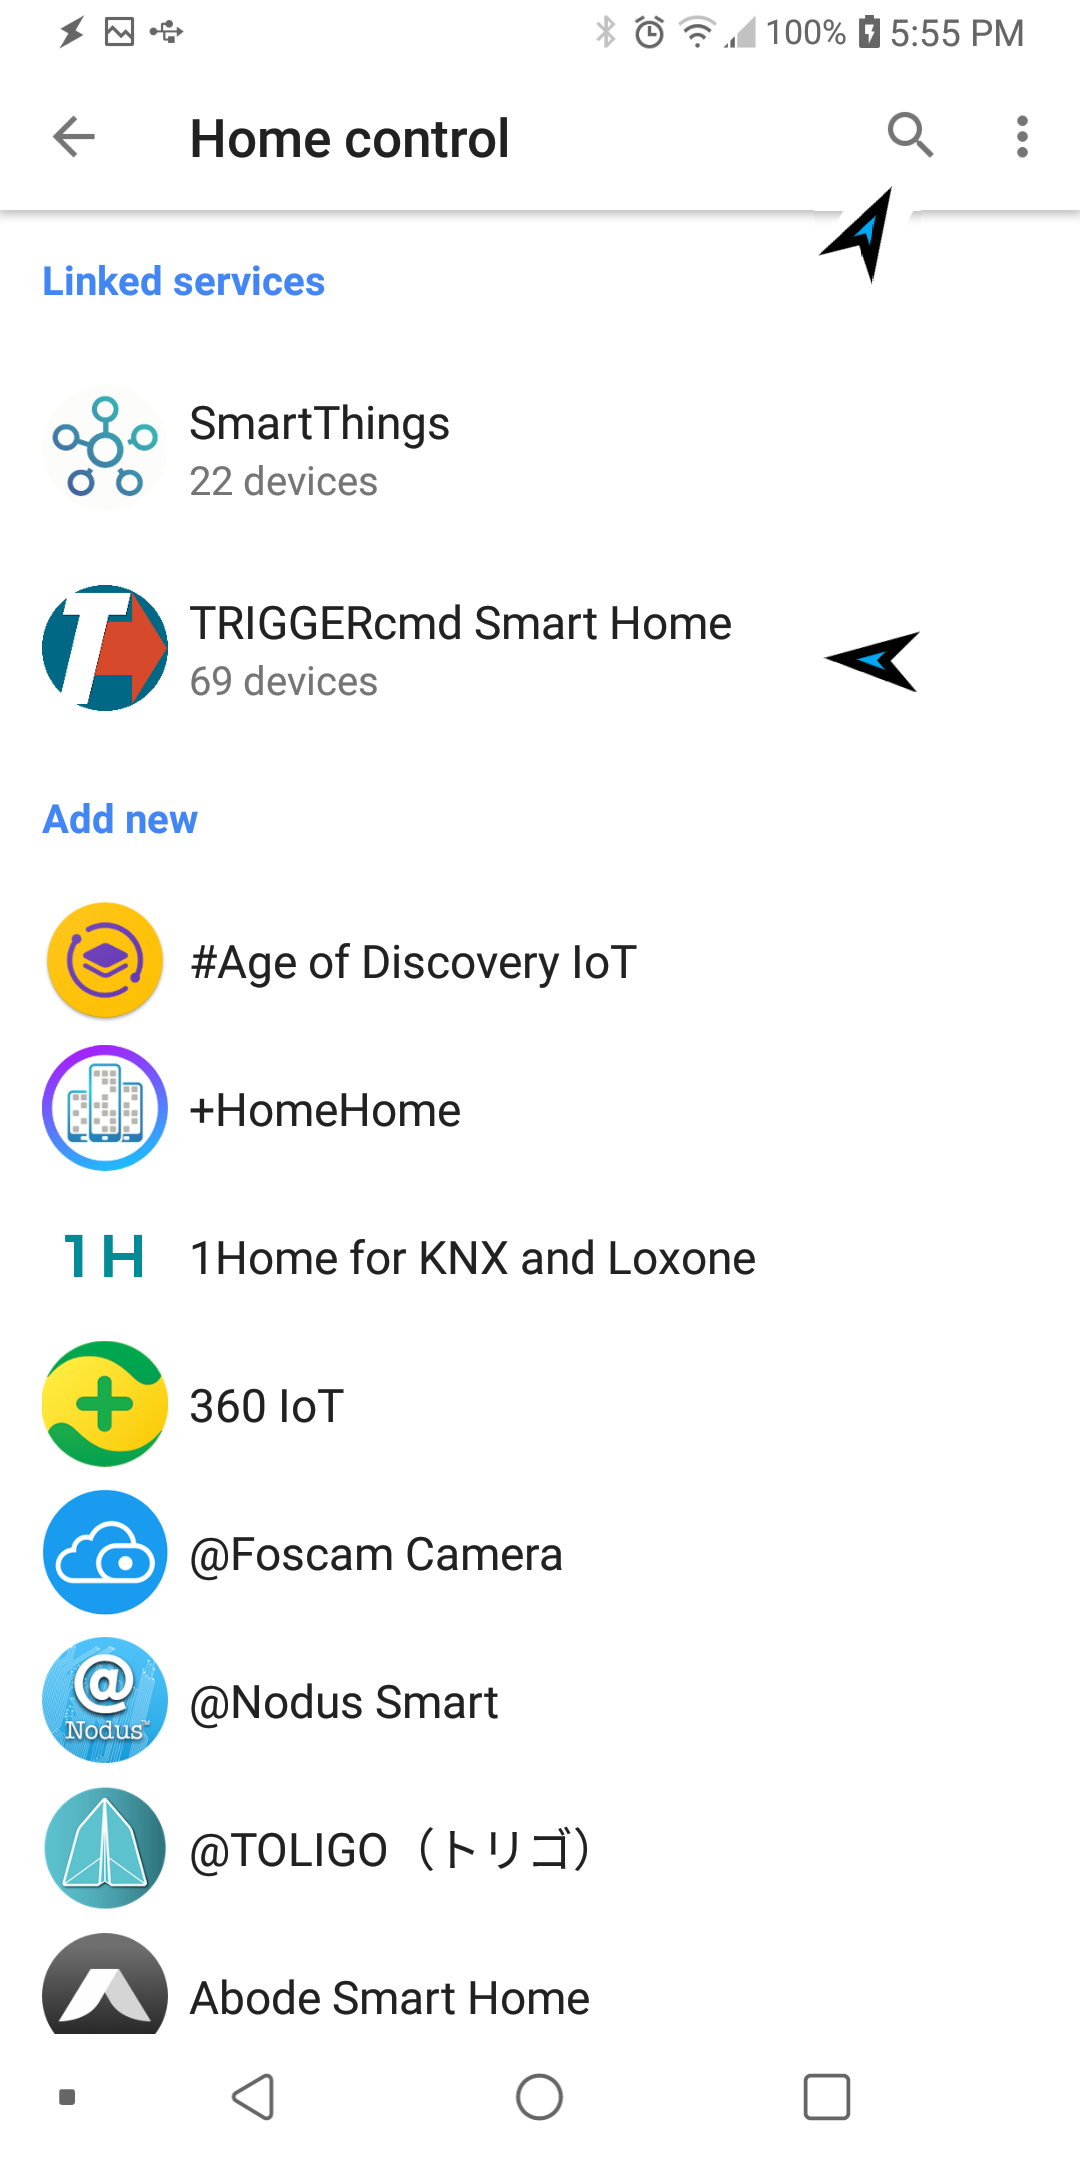 Search TRIGGERcmd Smart Home